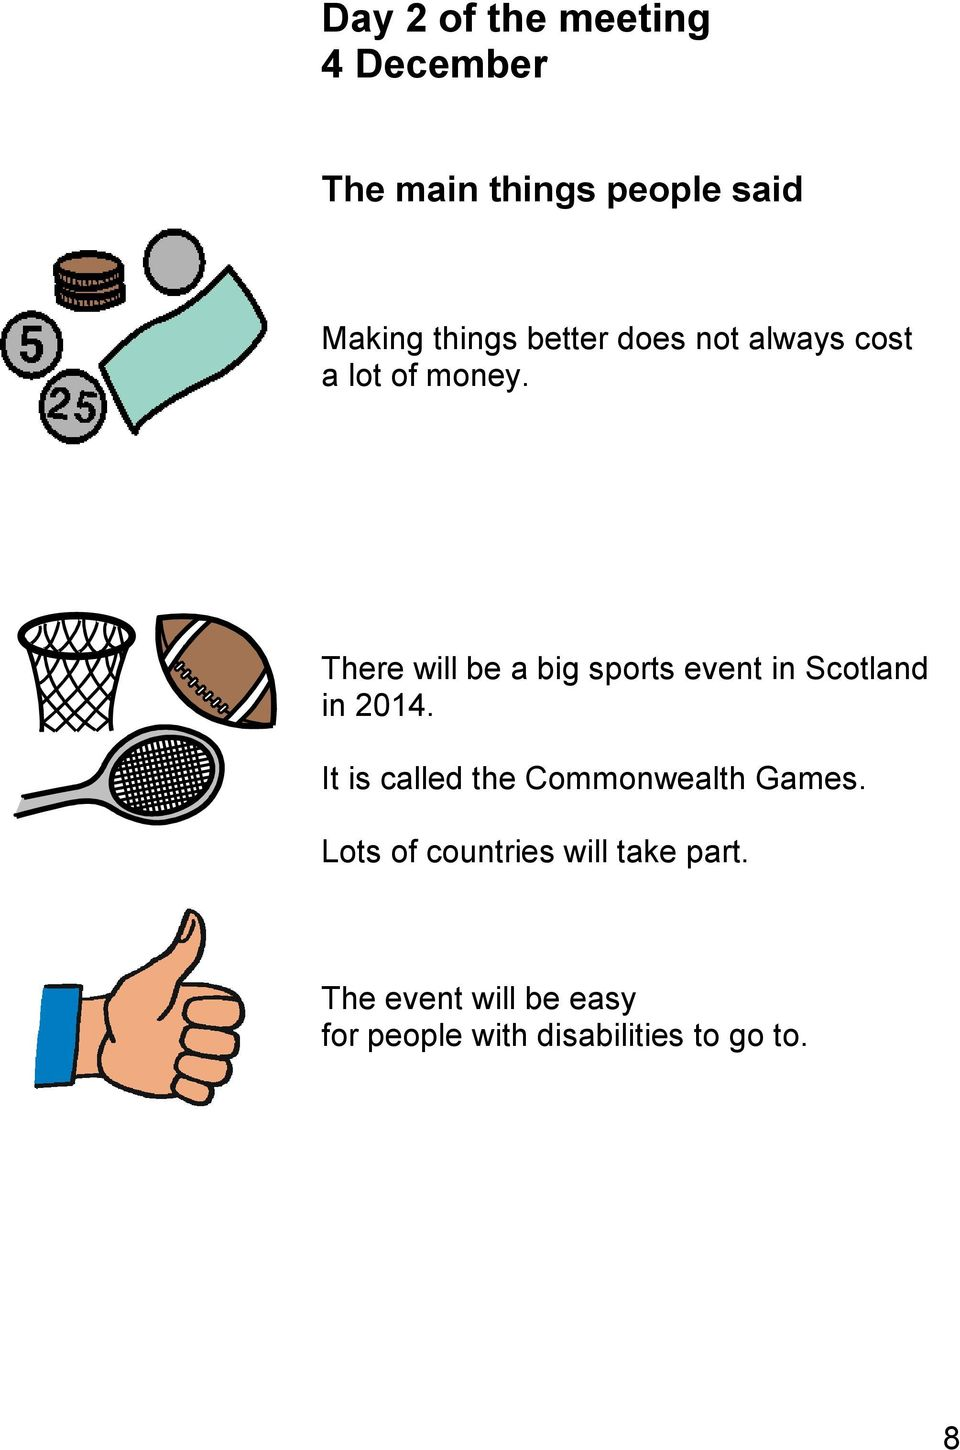 There will be a big sports event in Scotland in 2014.